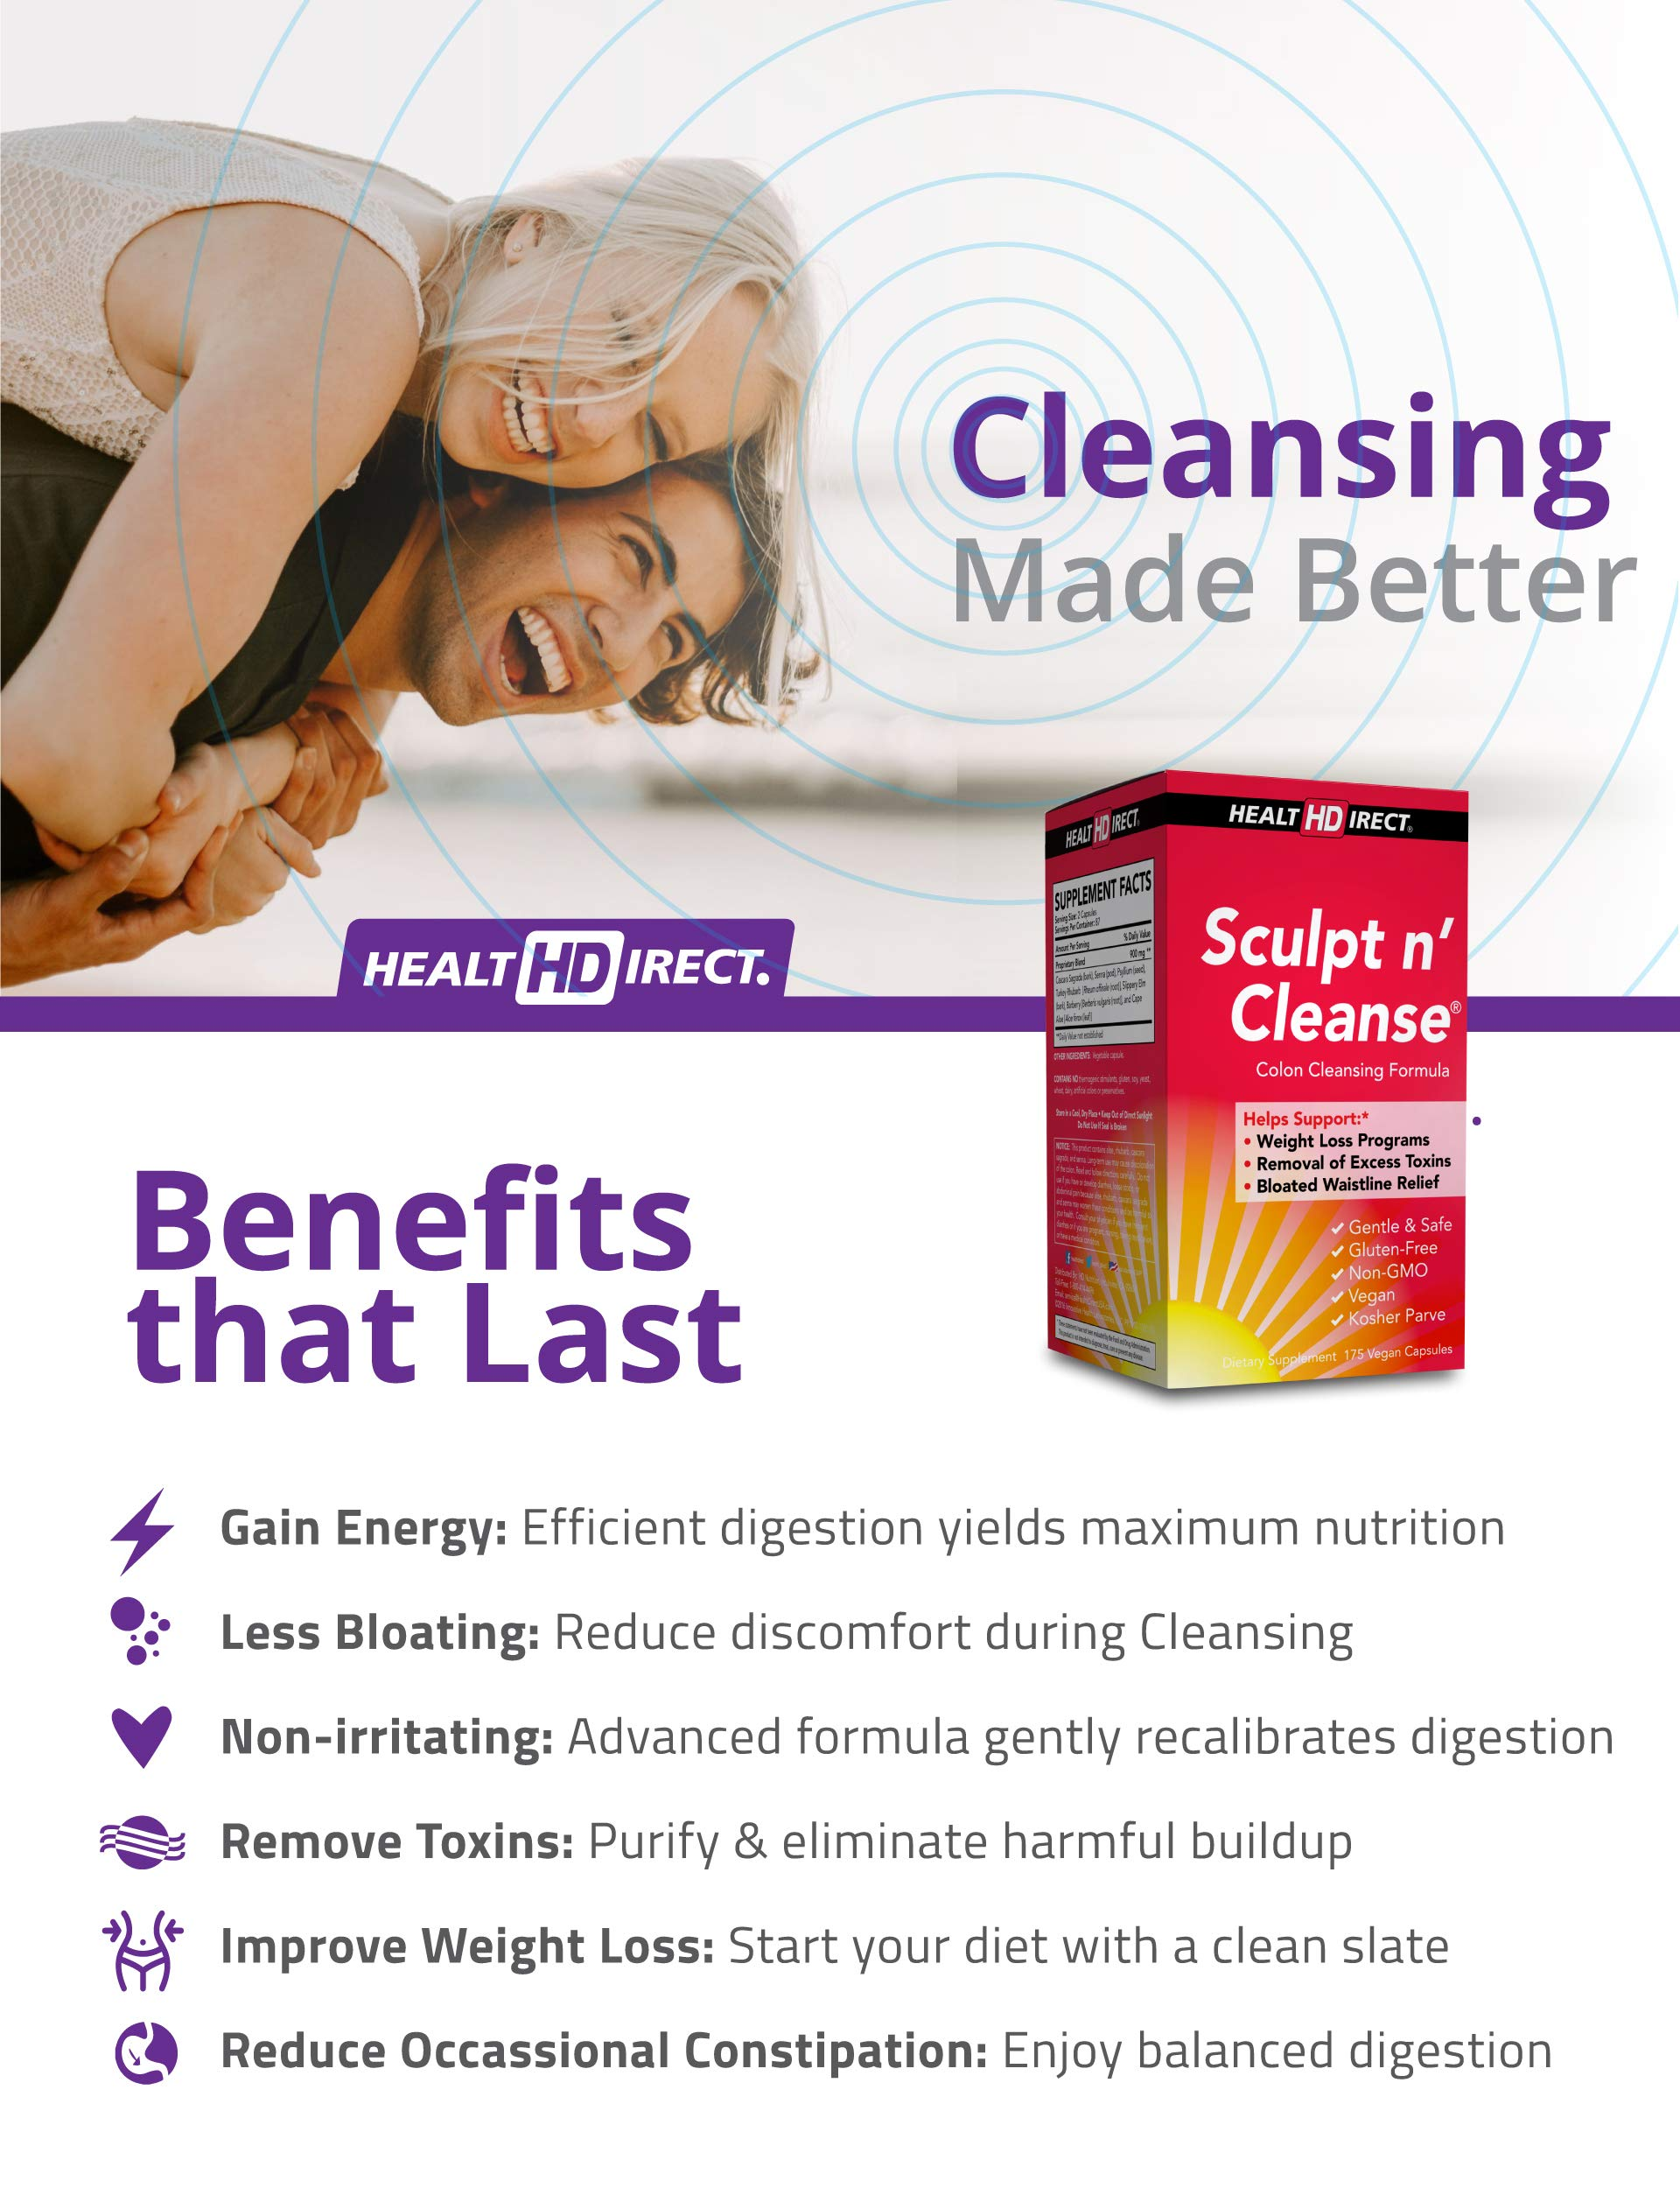 Sculpt n' Cleanse: Colon Cleanse, Detox, Weight Loss & Increased Energy Supplement | Vegan | Non GMO by Health Direct (Image #2)